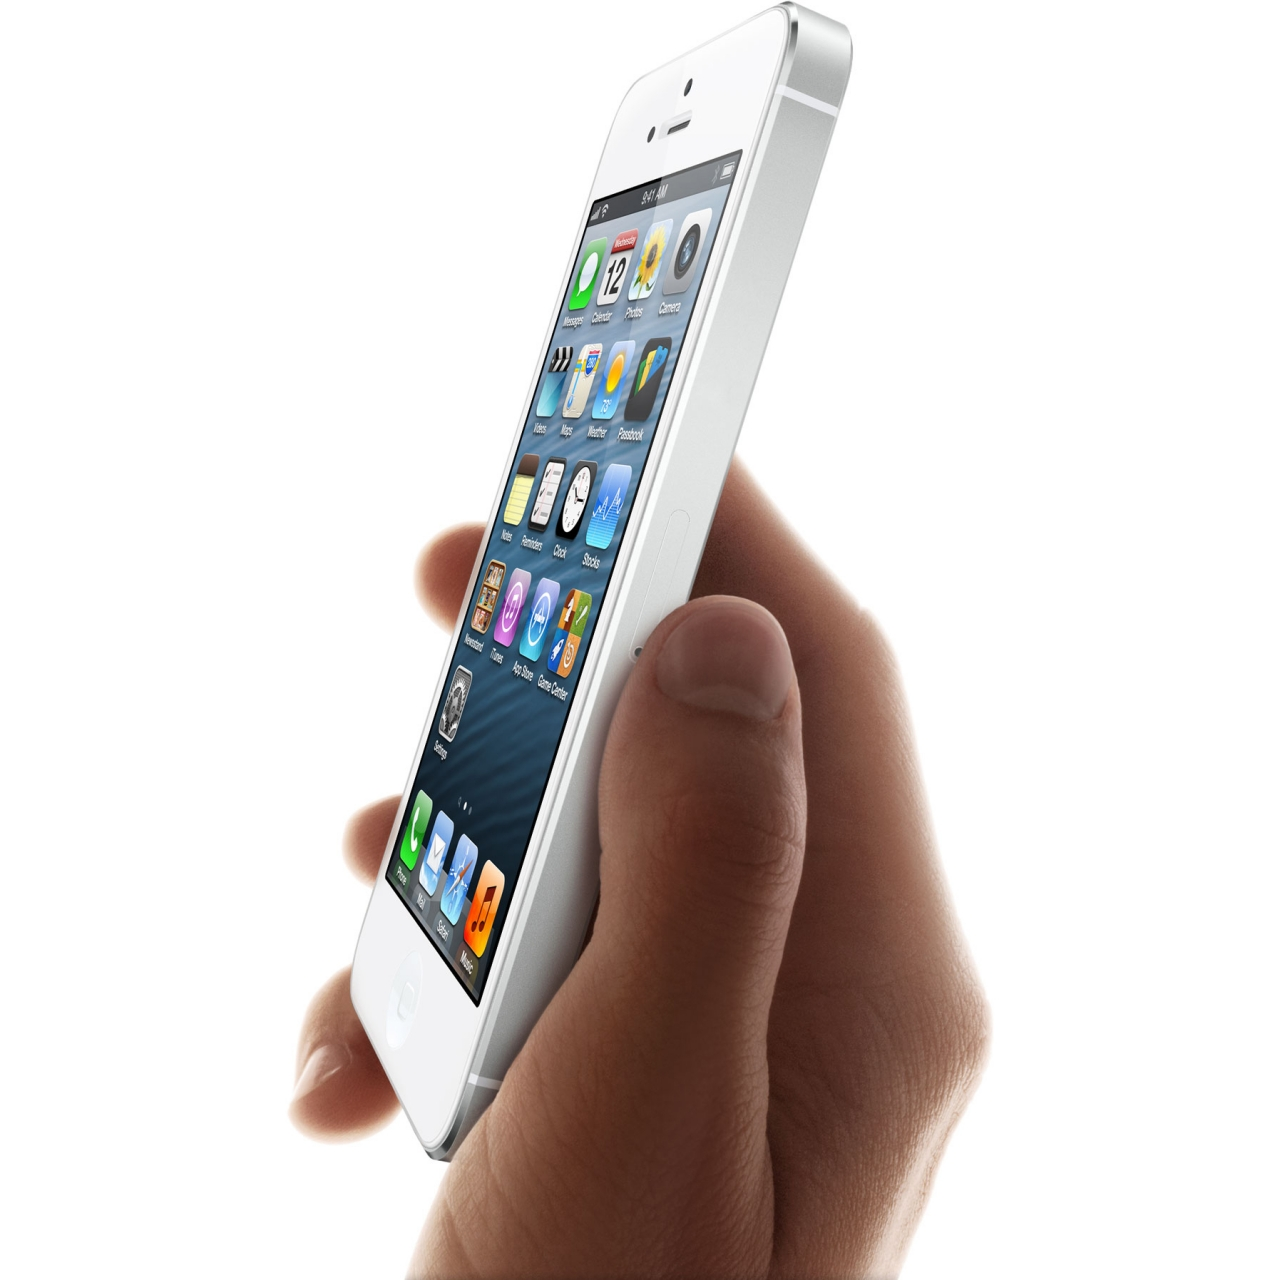 Quality Control Crackdown Slows Iphone 5 Production